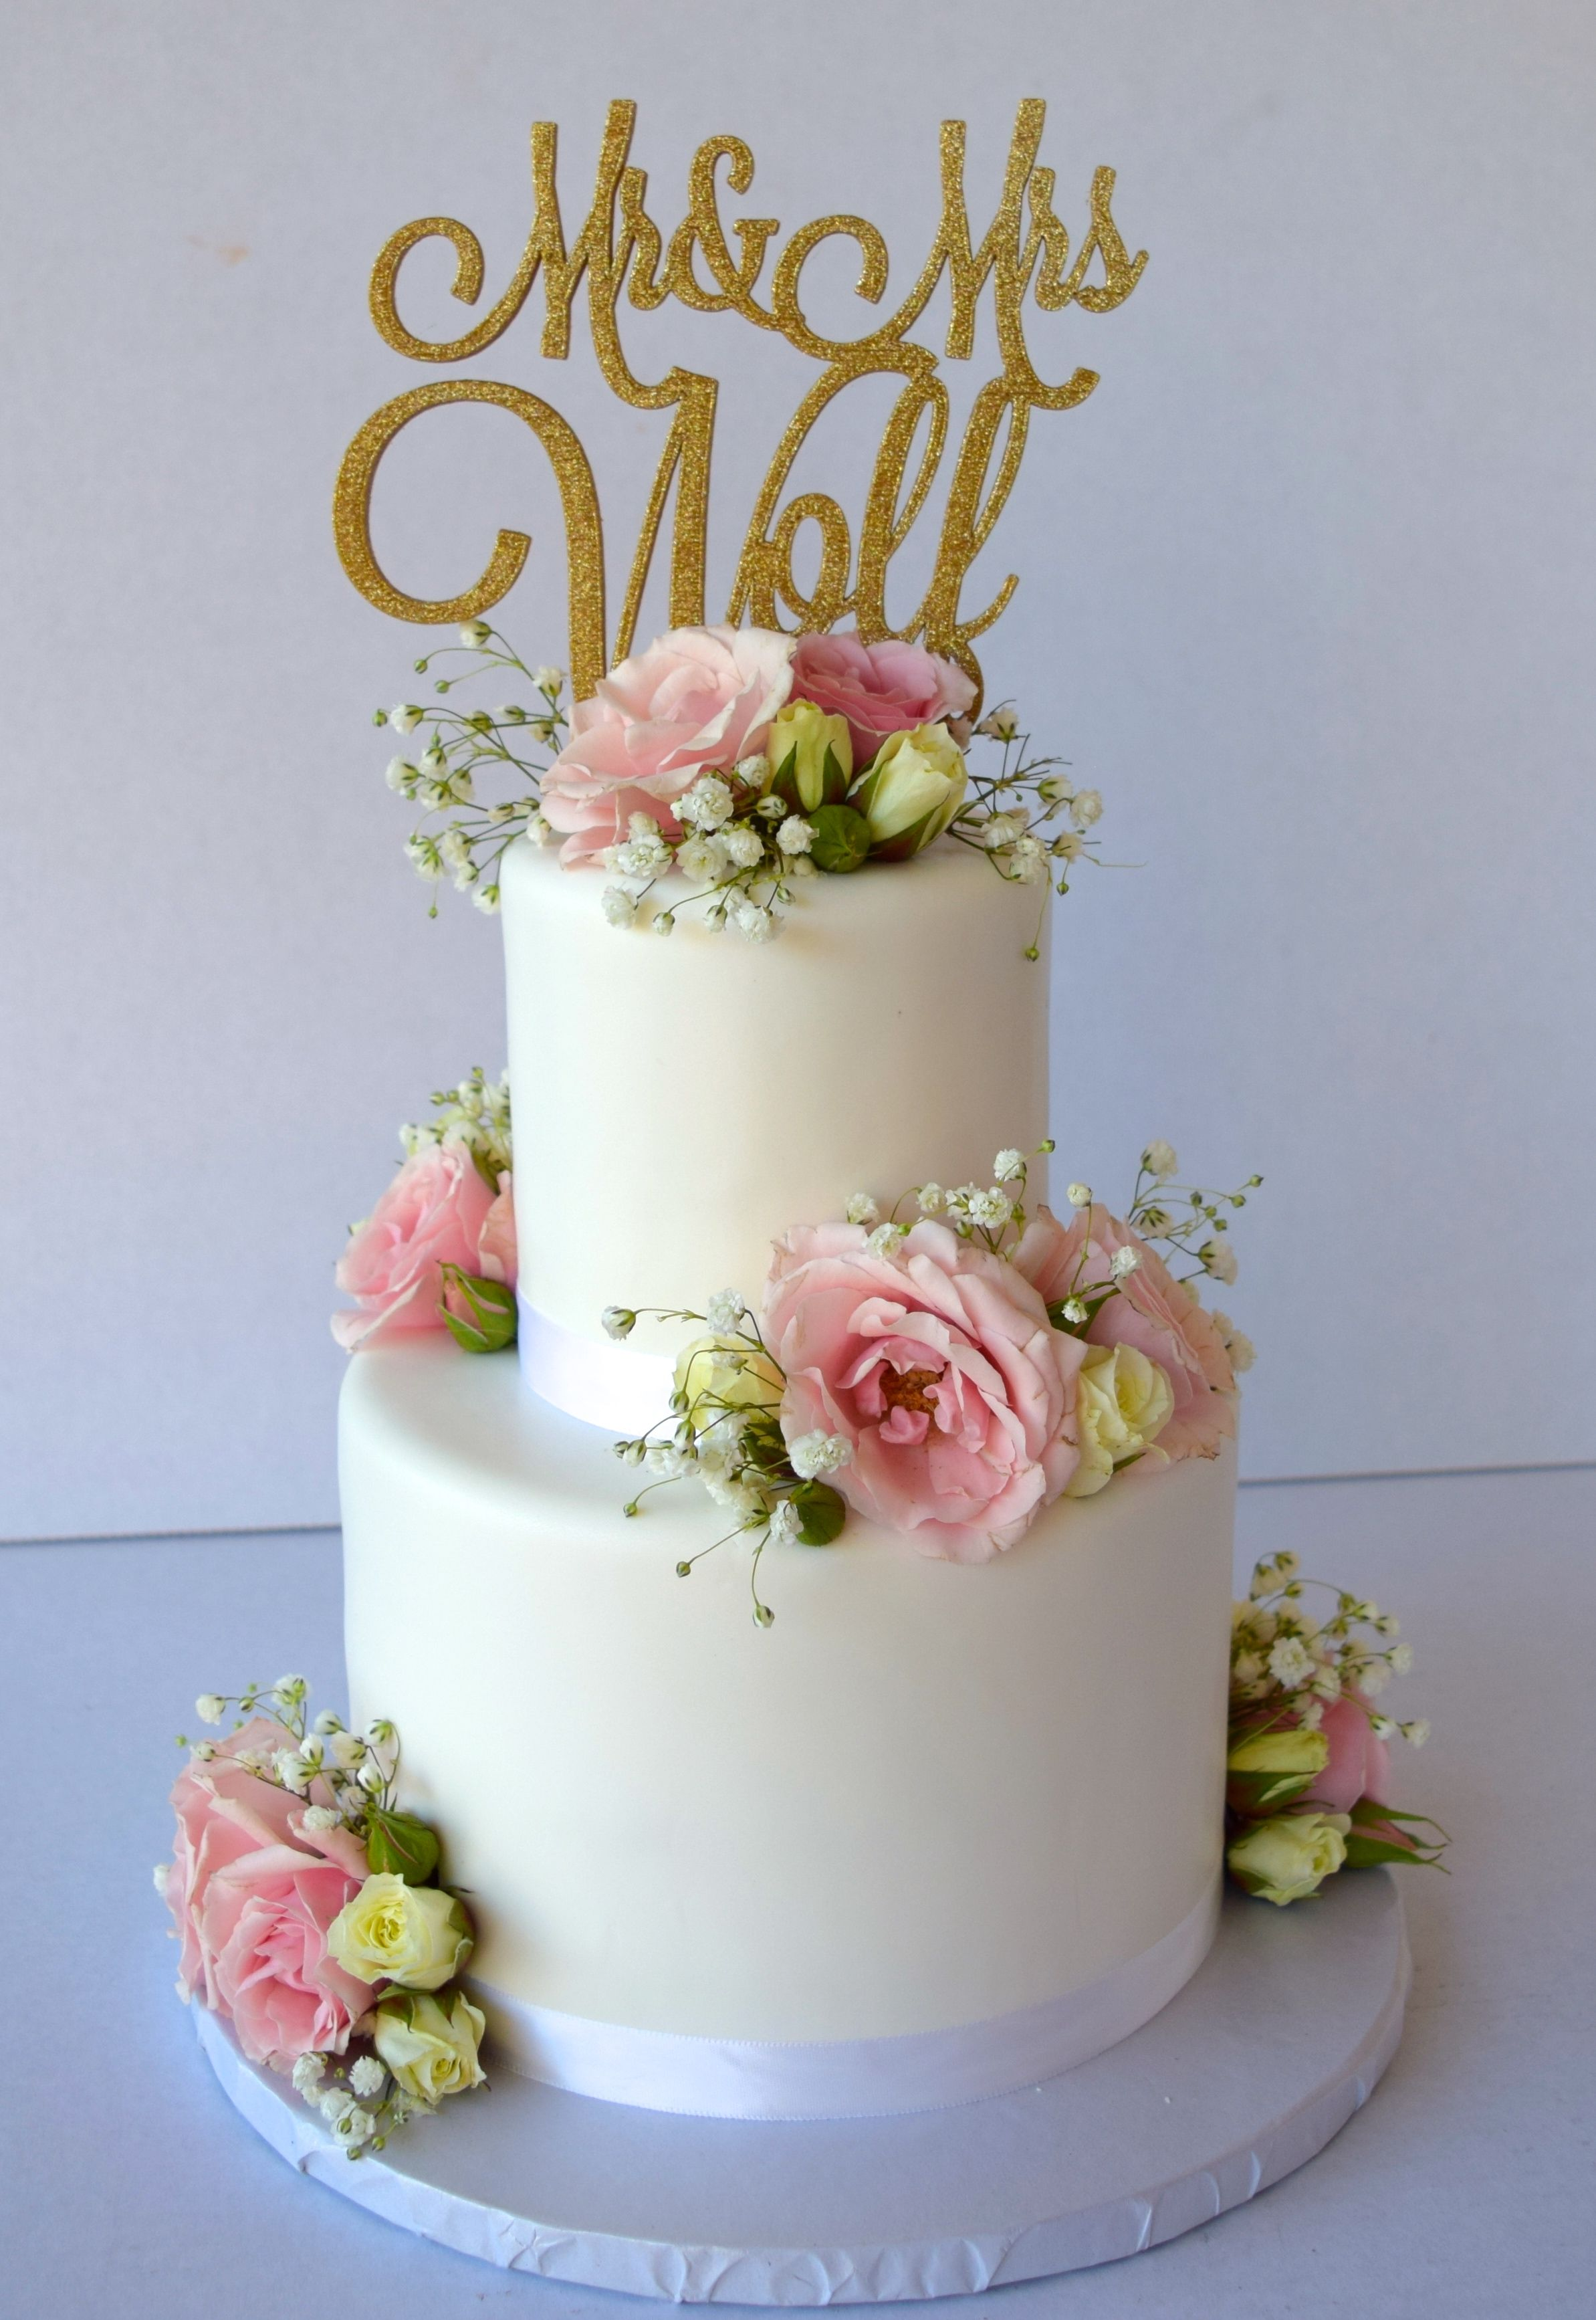 2 Tier White Wedding Cake With Blush Pink Roses On Each Tier And